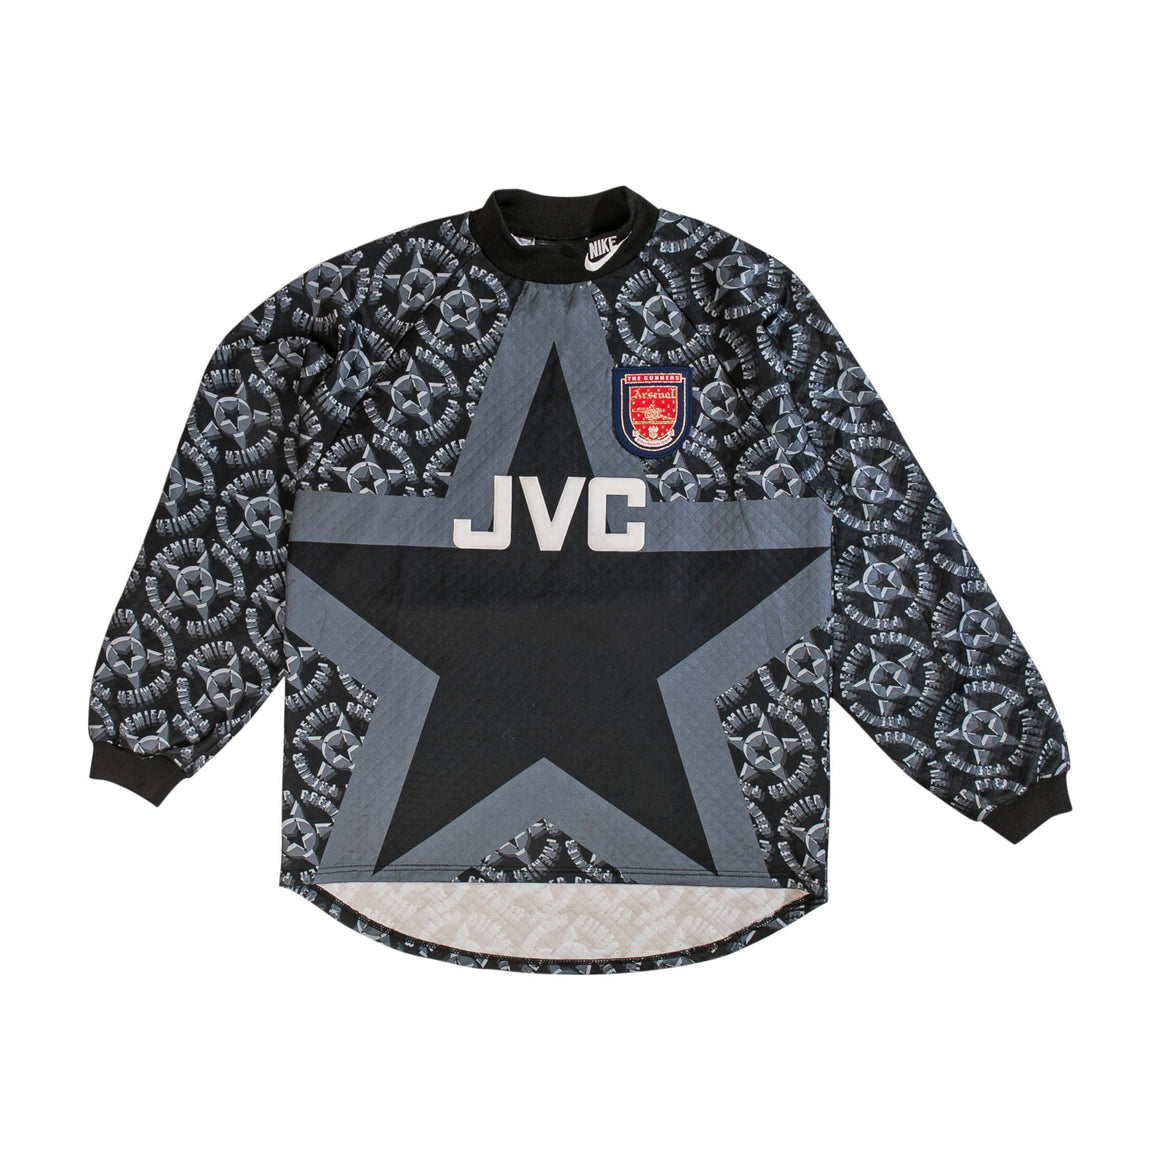 Football Shirt Collective 1994-95 Arsenal goalkeeper Shirt (Excellent) M